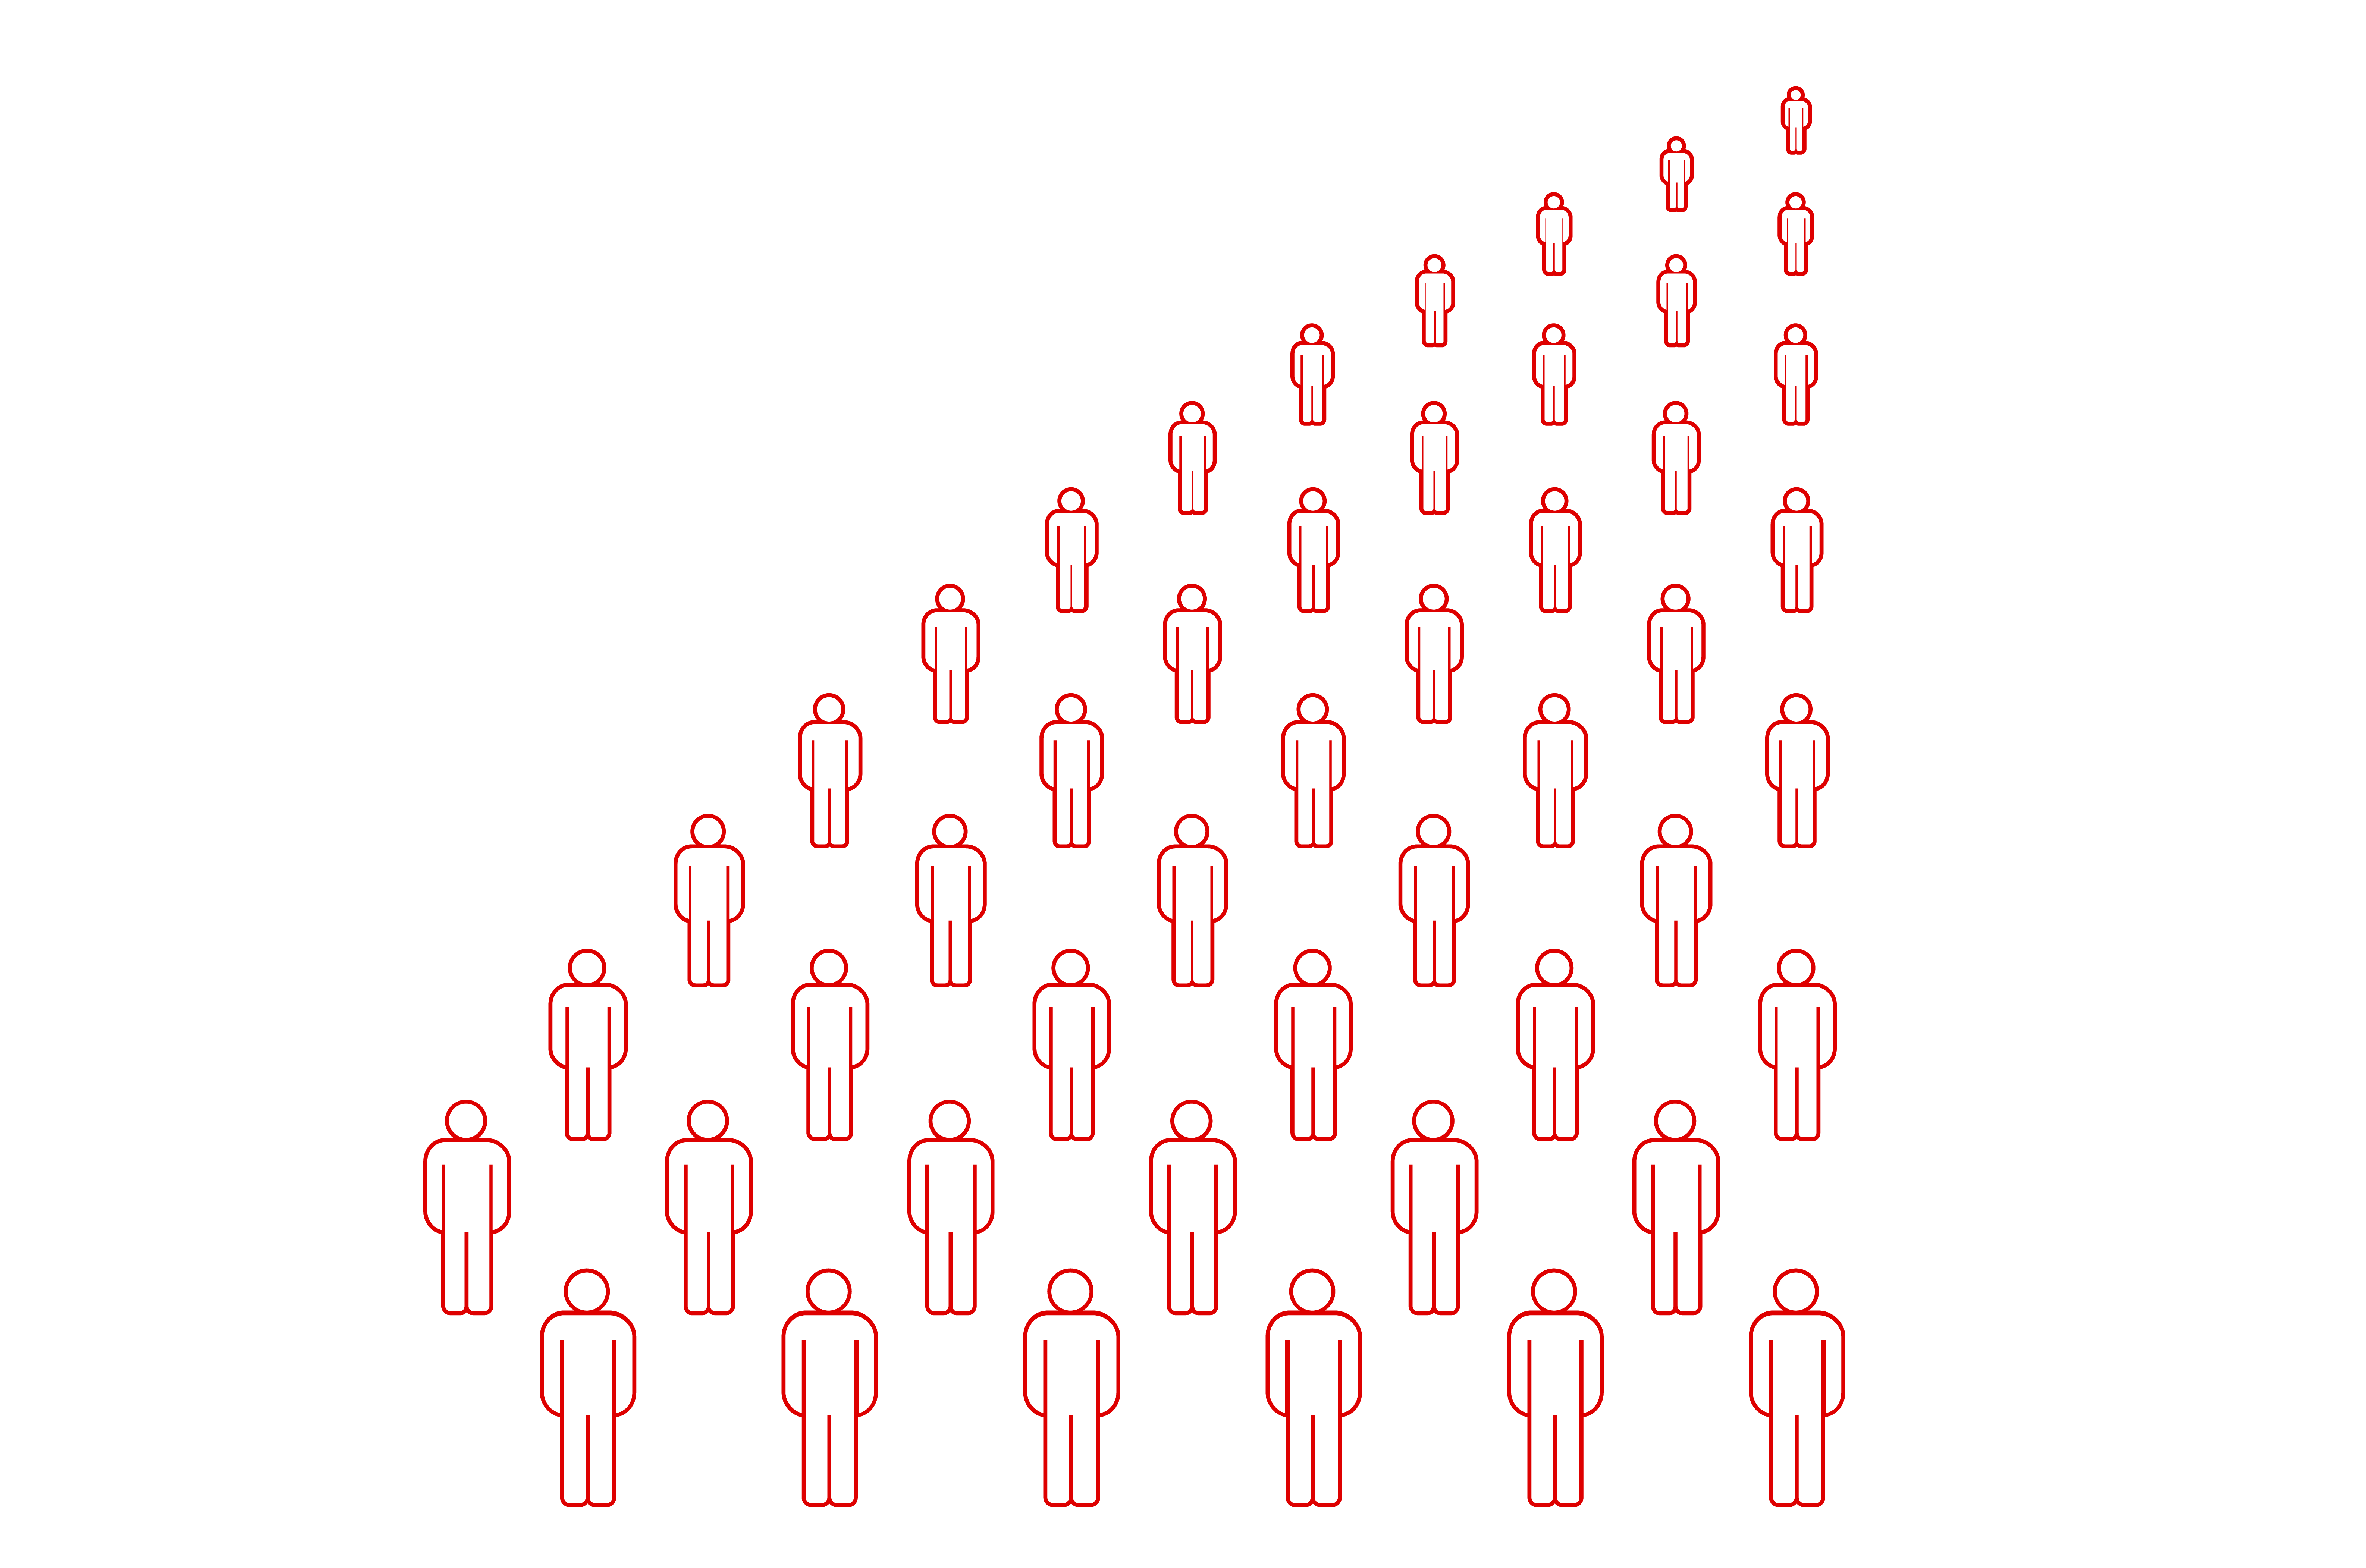 image of people standing in rows